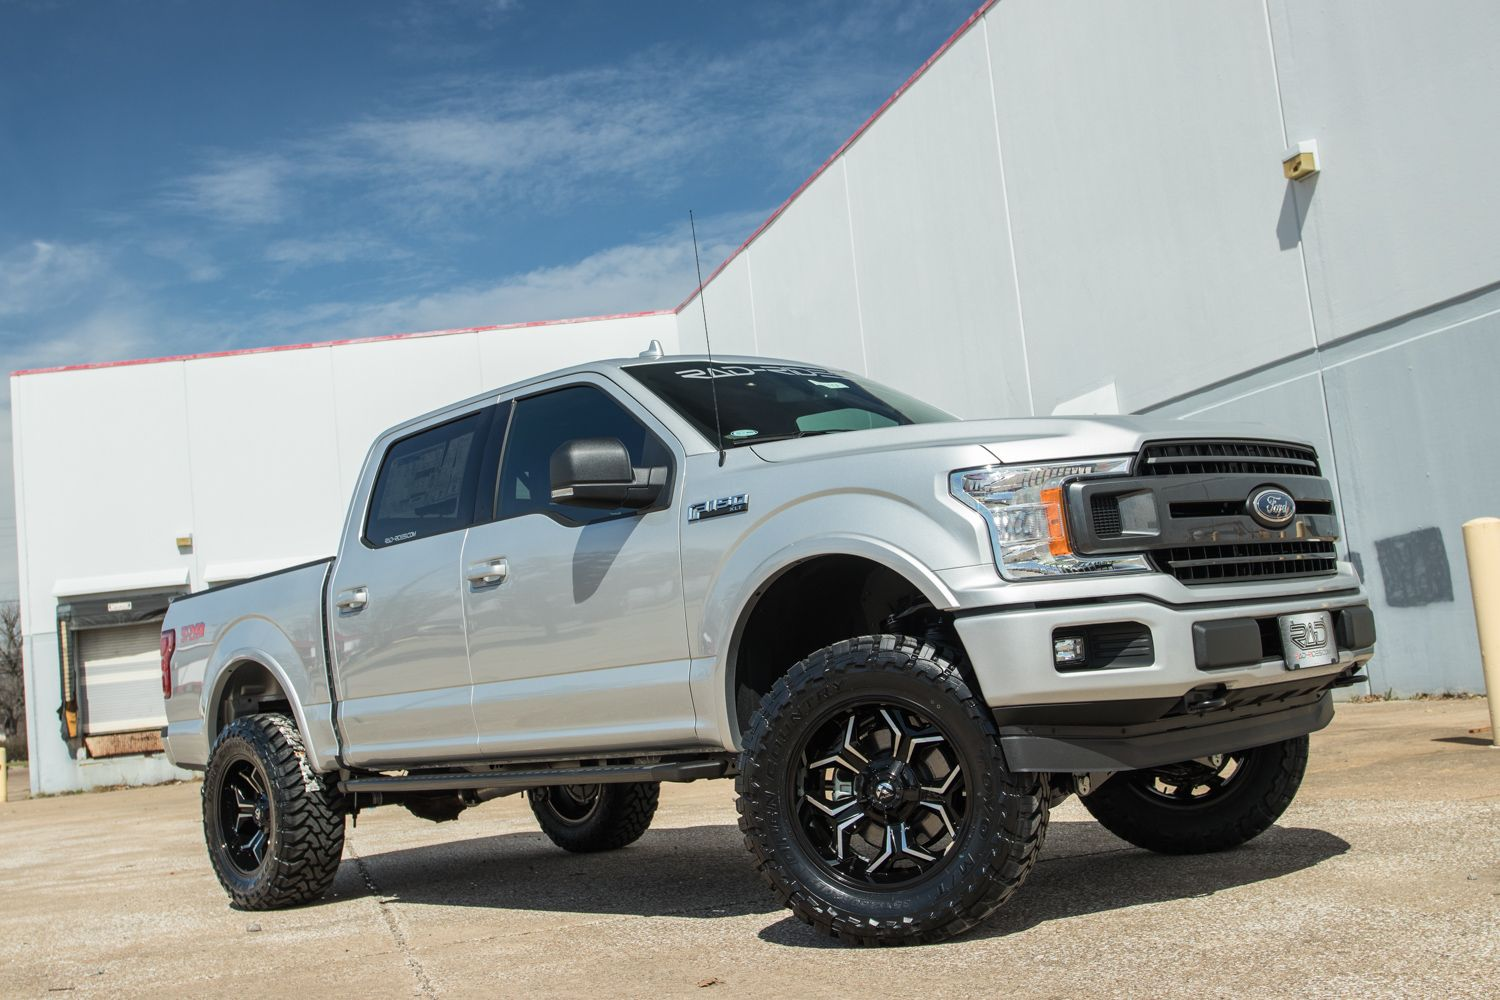 medium resolution of lifted 4x4 2018 ford f 150 radx stage 2 silver custom truck rad rides